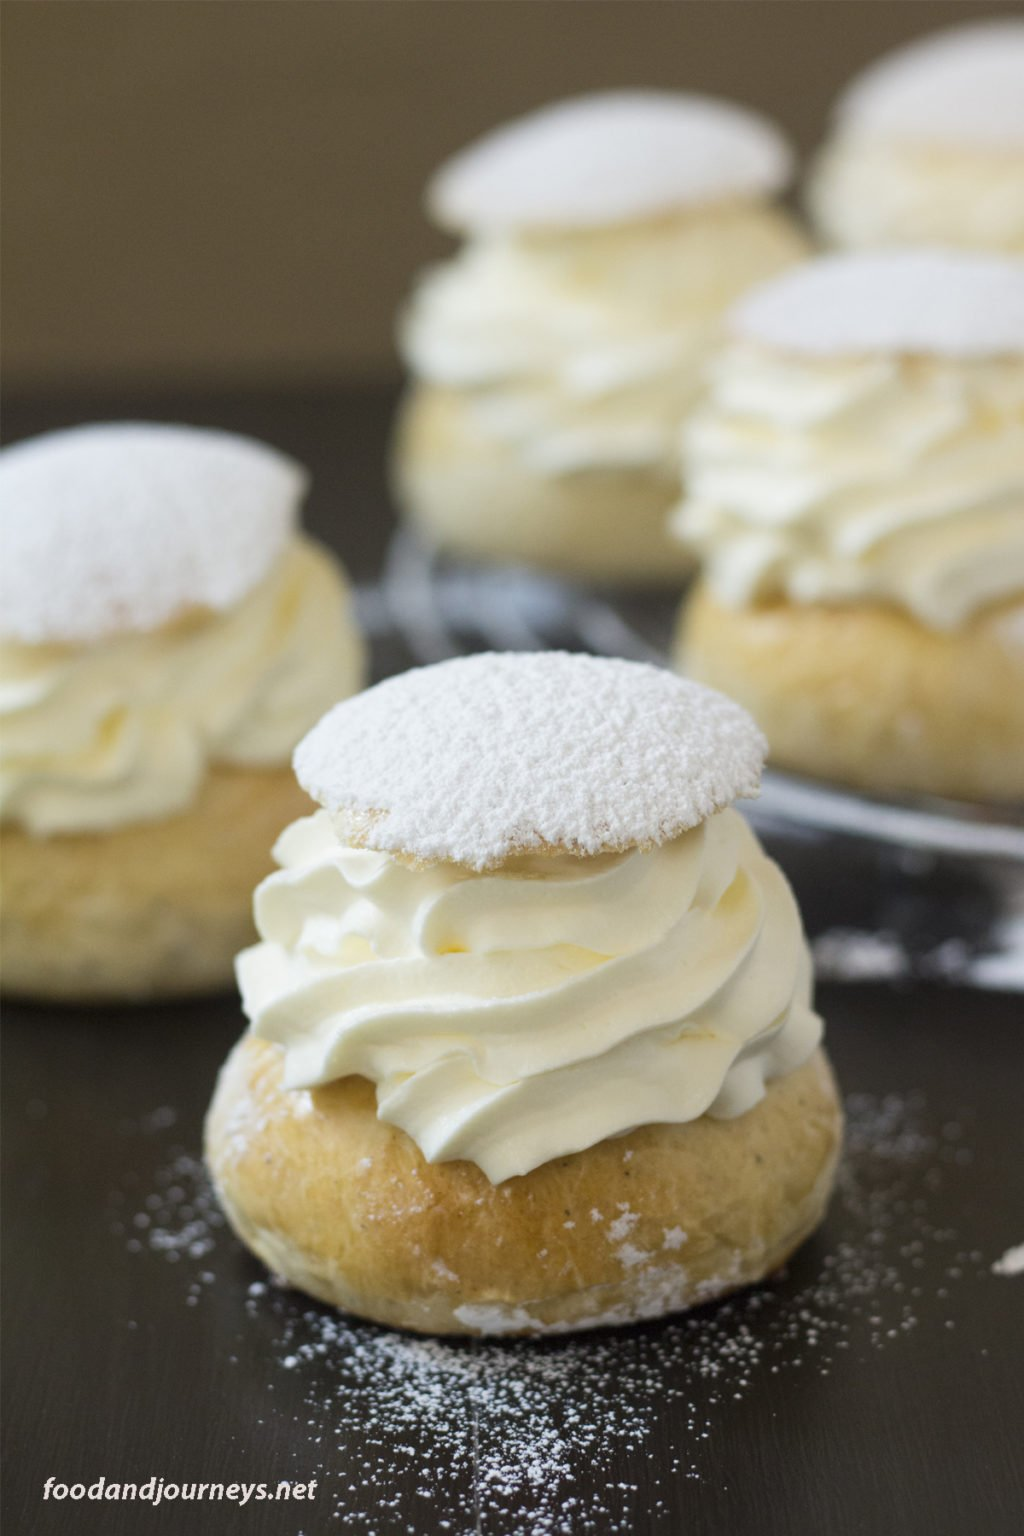 Closer shot of a piece of Swedish Lent Buns (Semlor), highlighting whipped cream and powdered sugar on top.